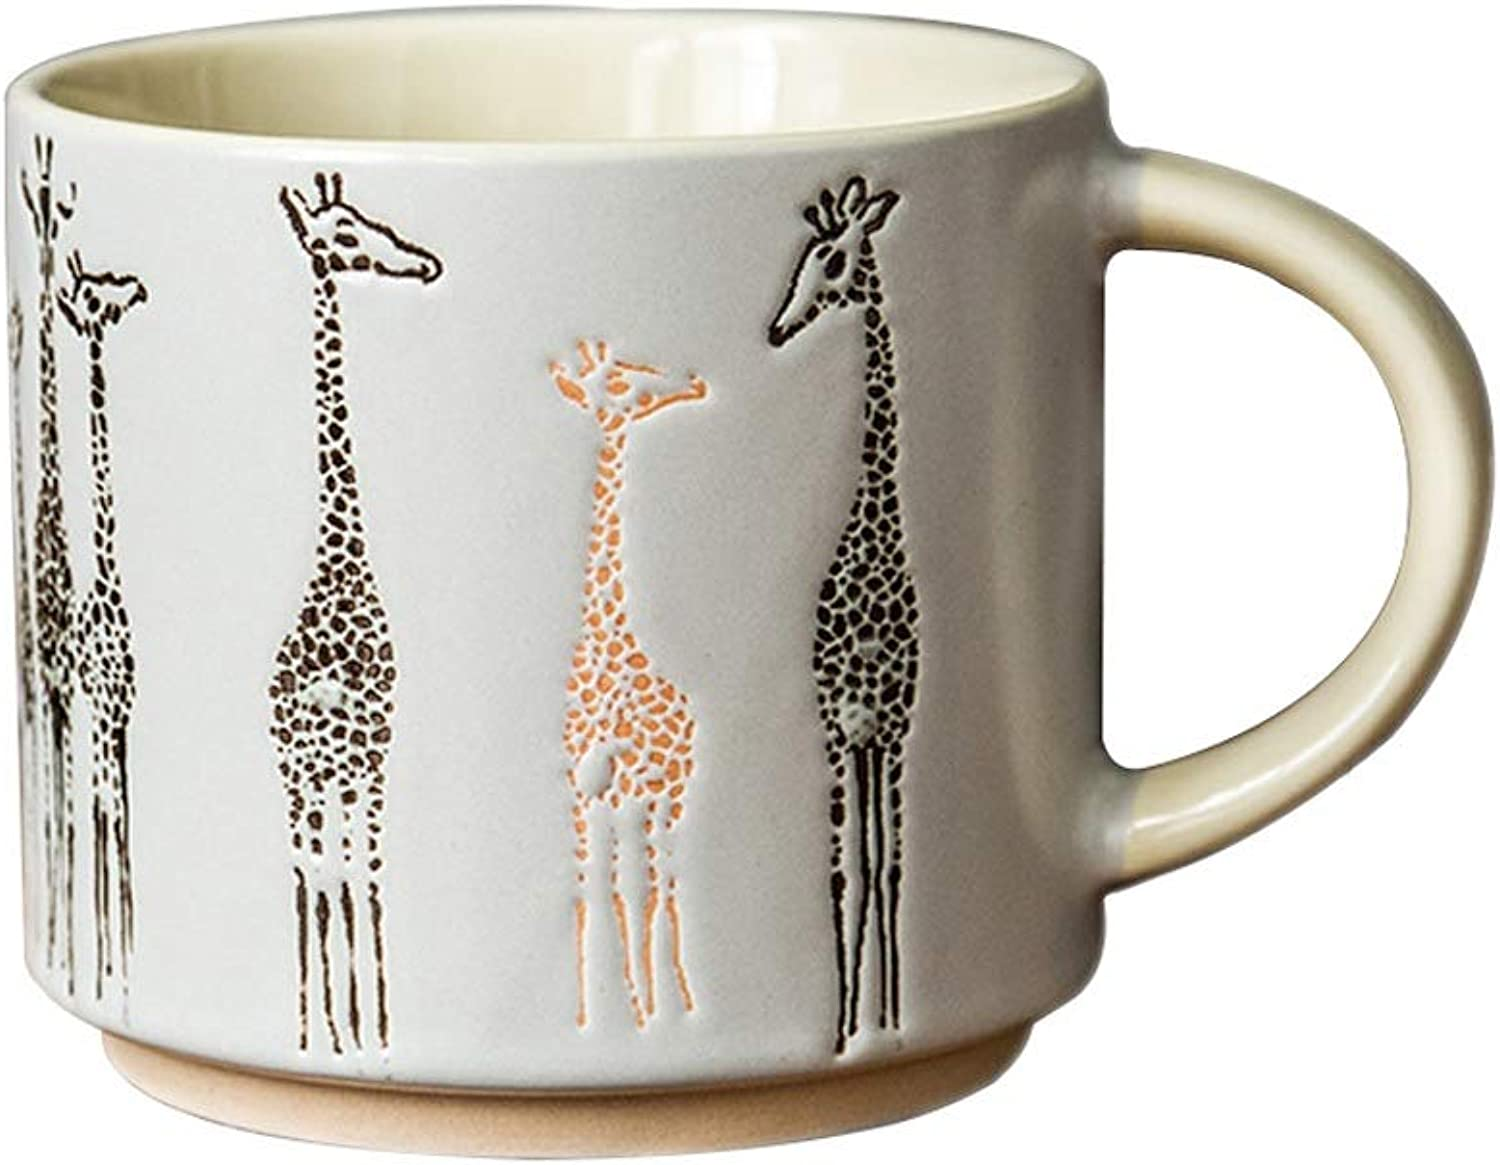 Creative Ceramic Cup Couple Drinking Cup Coffee Cup Giraffe Mug Couple Drinking Cup Milk Cup Office Water Glass